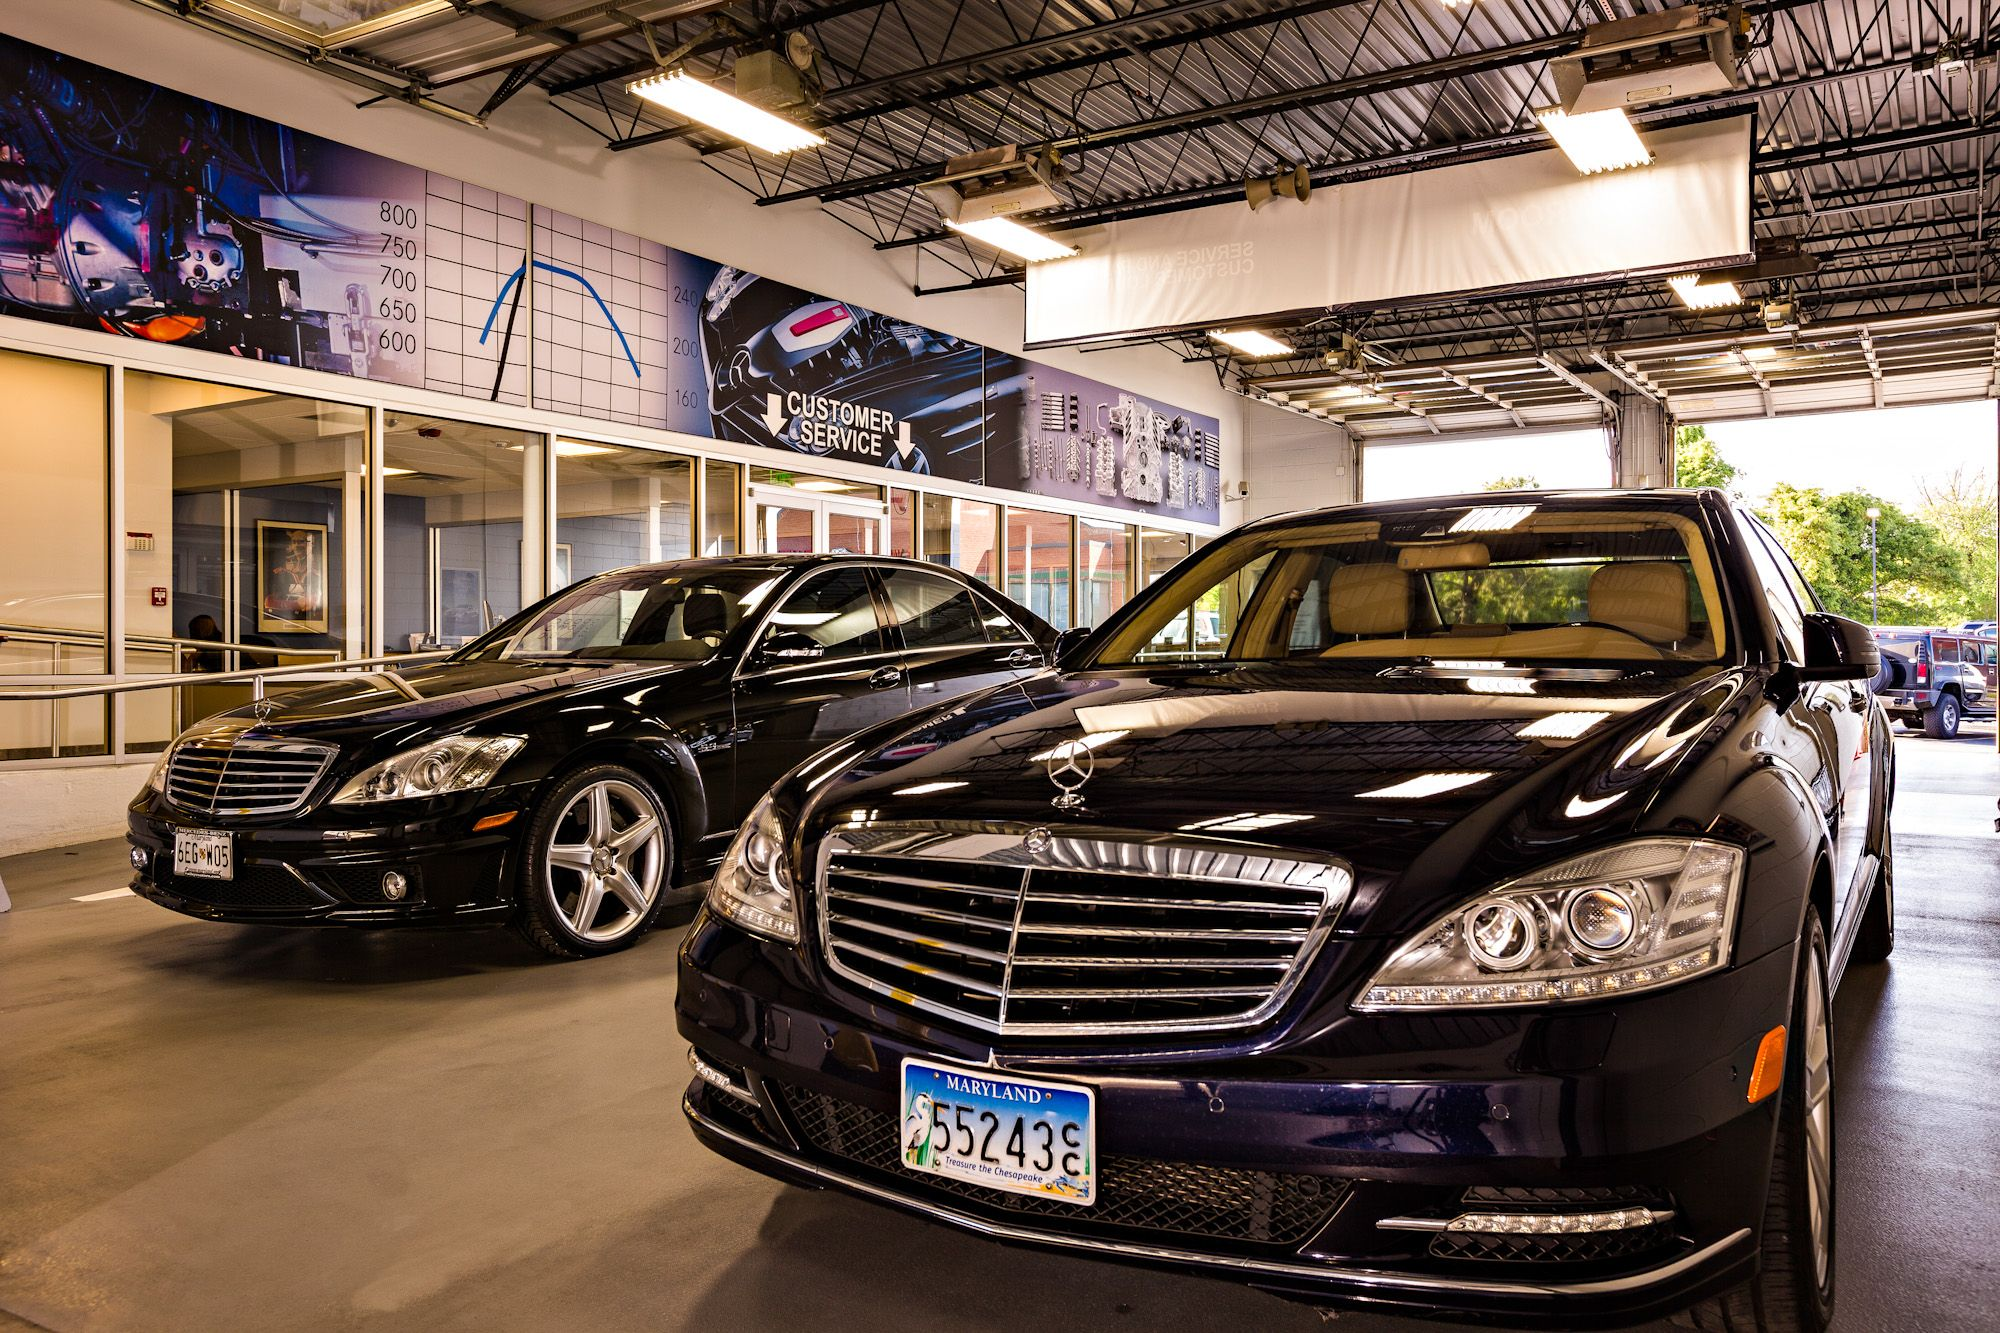 Maryland s Premier Mercedes Benz Service Facility Mercedes Benz of